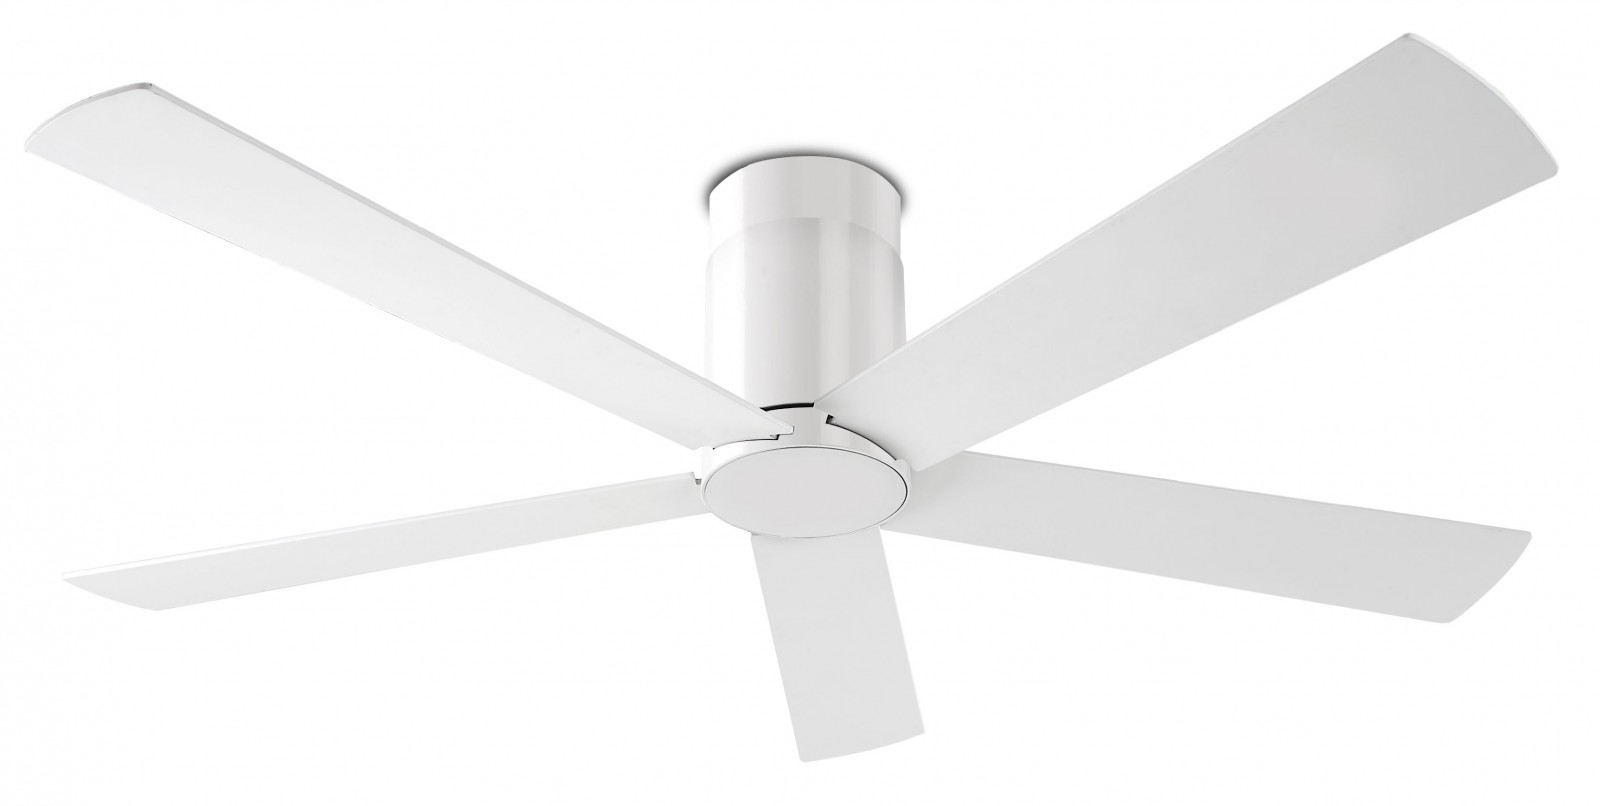 ceiling fan rodas 132cm 52 white with extension kit ceiling fans for domestic and